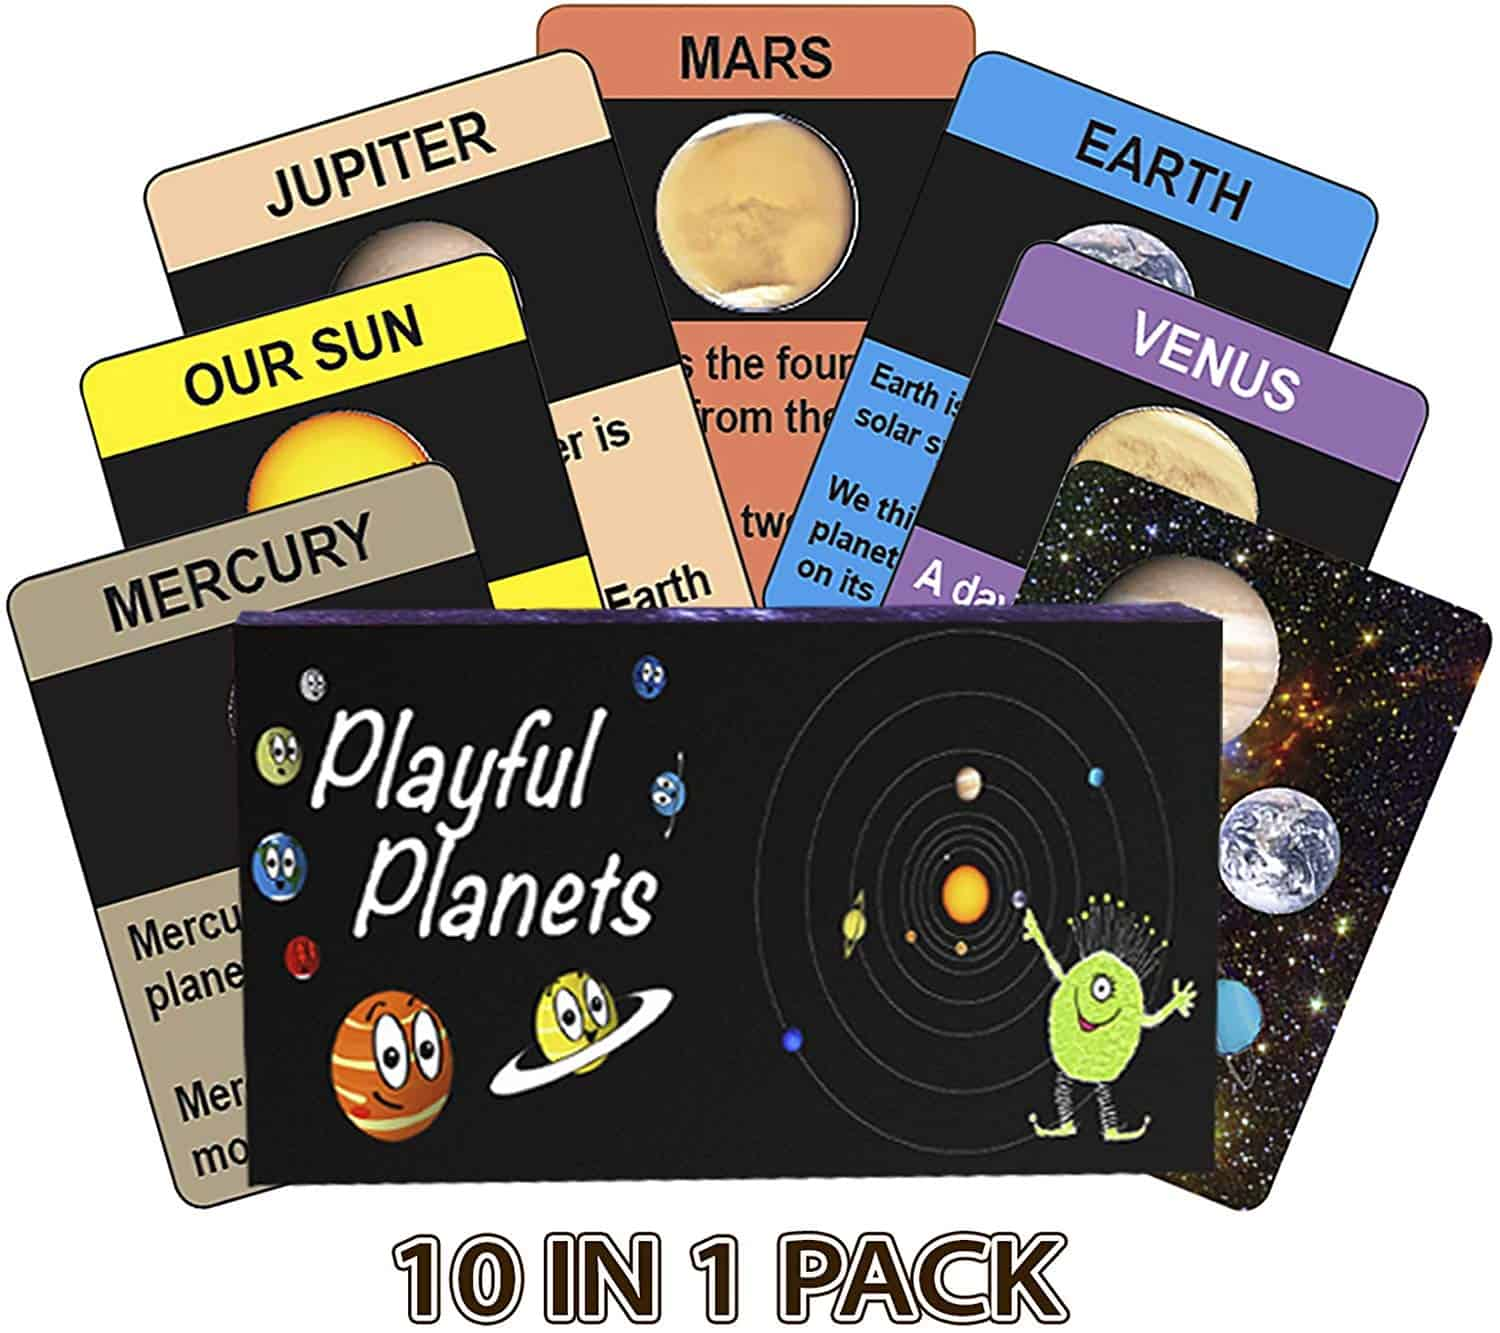 Playful Planets Classic Card Games for kids